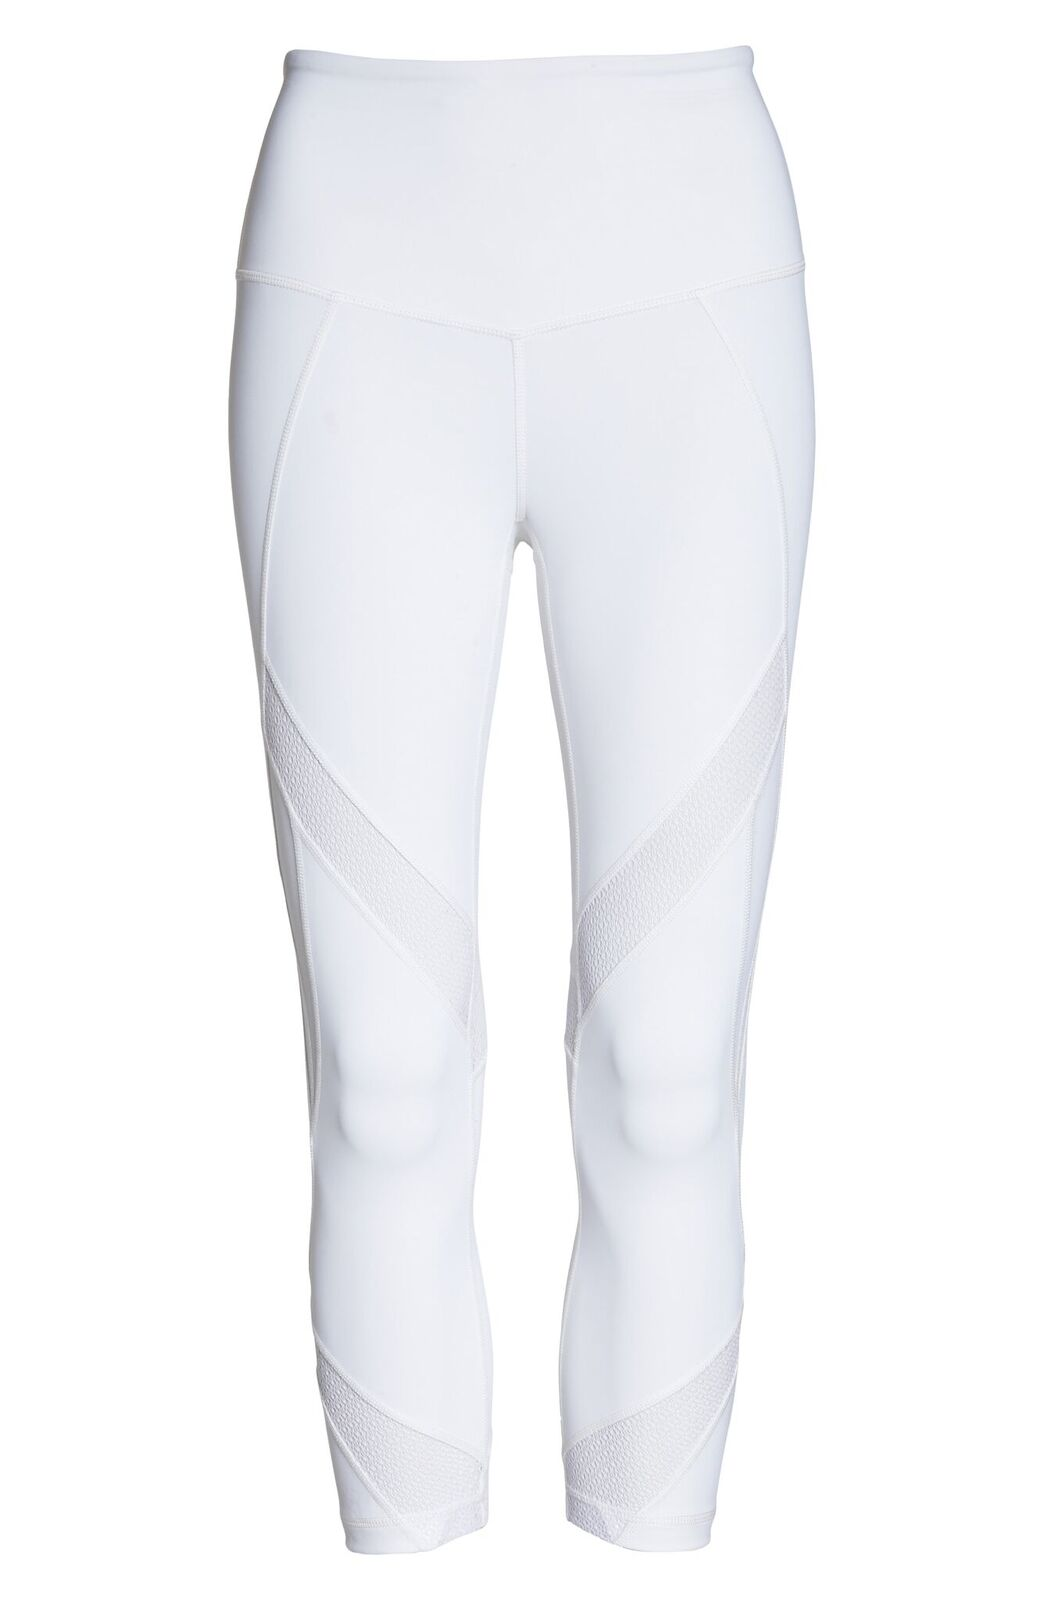 In Dreams High Waist Leggings - $69.{&amp;nbsp;}Looking for a jumpstart to your workout wardrobe? Zella, a Nordstrom brand, has you covered. Find more info and buy online at shop.nordstrom.com/c/all-zella. (Image: Nordstrom)<p></p><p></p><p></p>